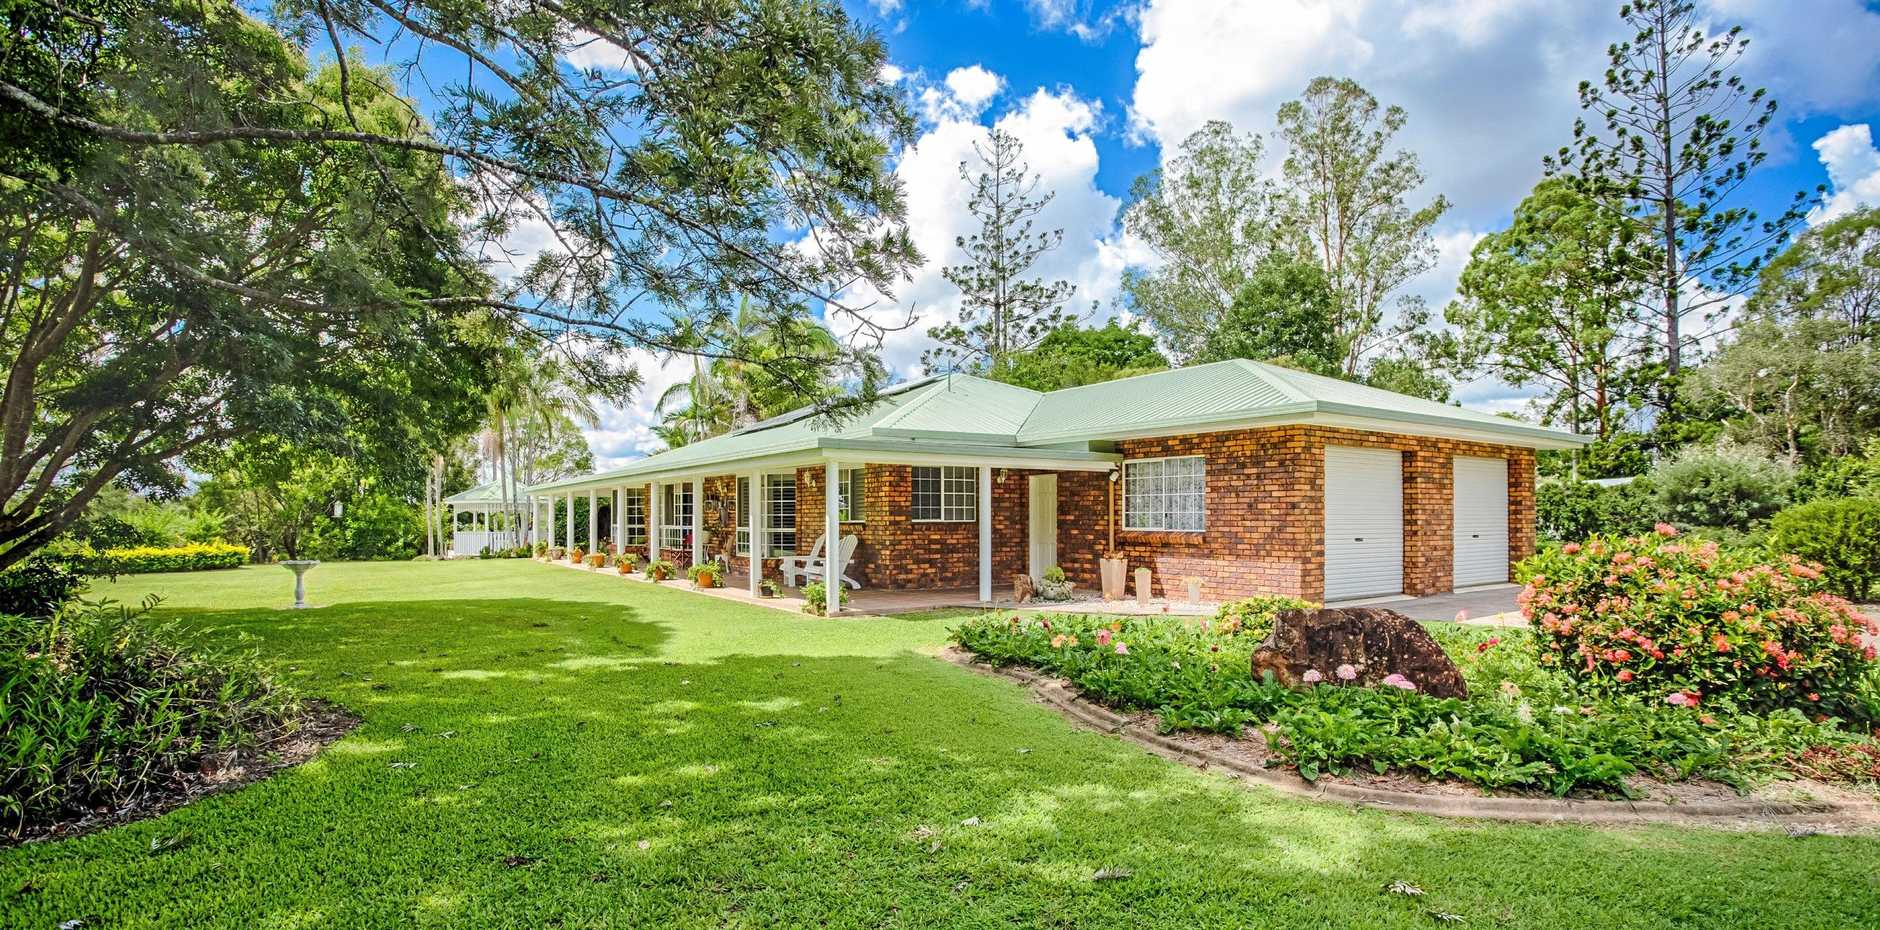 STYLISH PROPERTY: 25 Silky Oak Drive, Nahrunda is up for viewing this weekend.